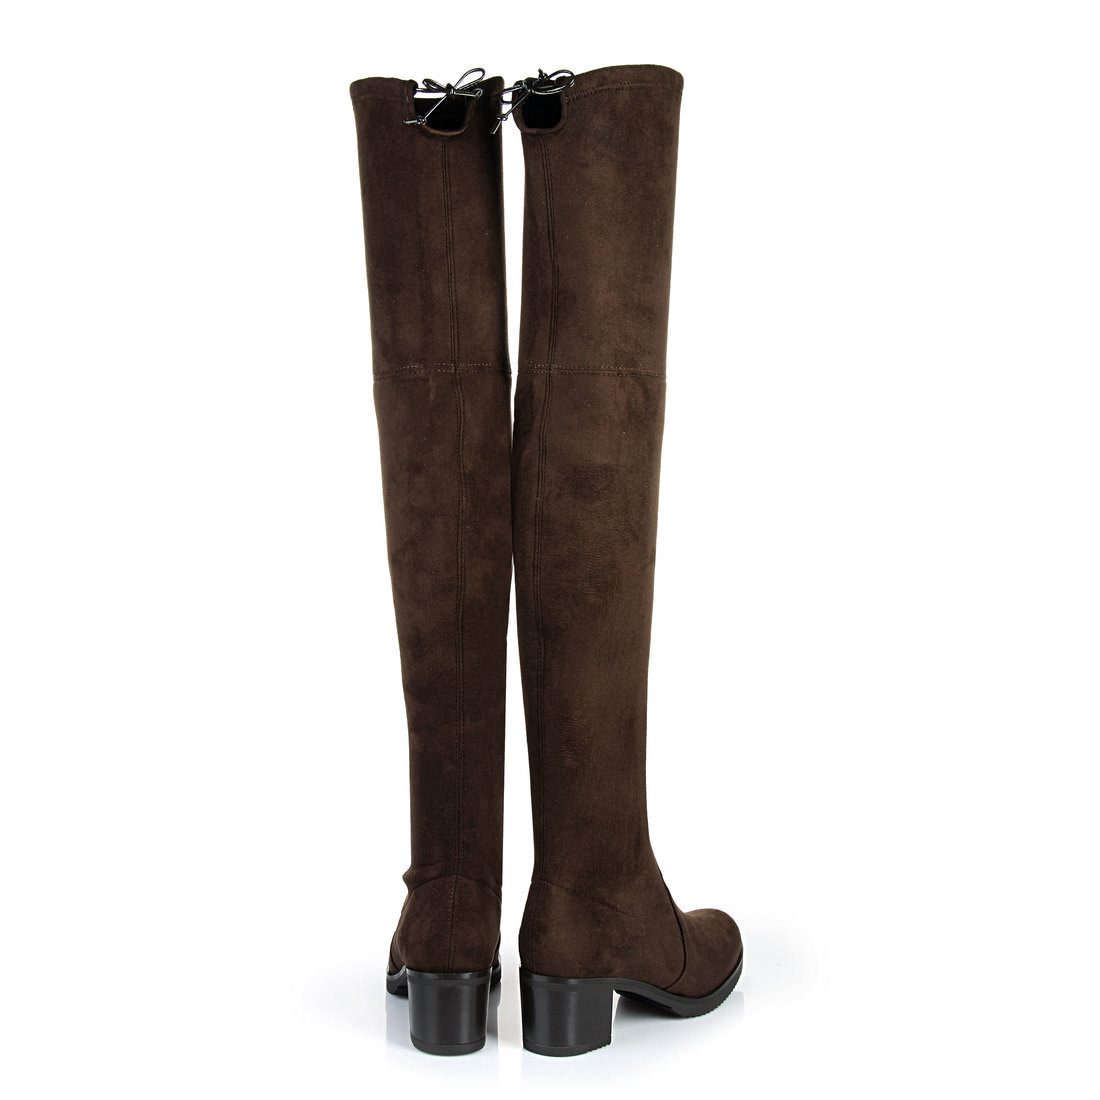 buffalo over the knee boots in dark brown buy online in buffalo online shop buffalo. Black Bedroom Furniture Sets. Home Design Ideas